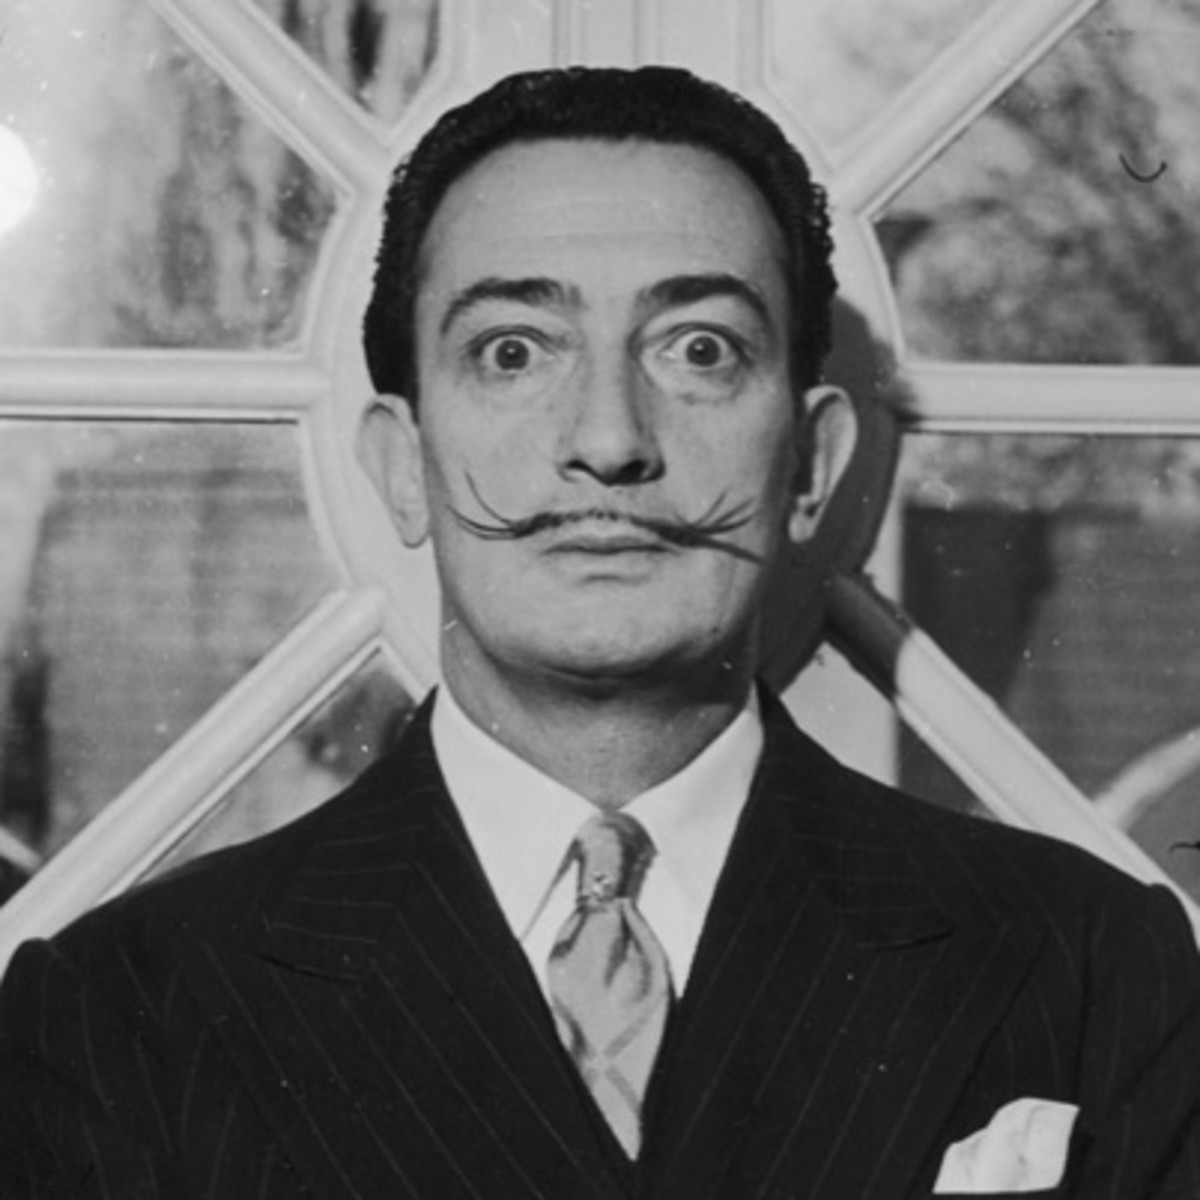 Preferência Salvador Dalí - Painter - Biography GO66